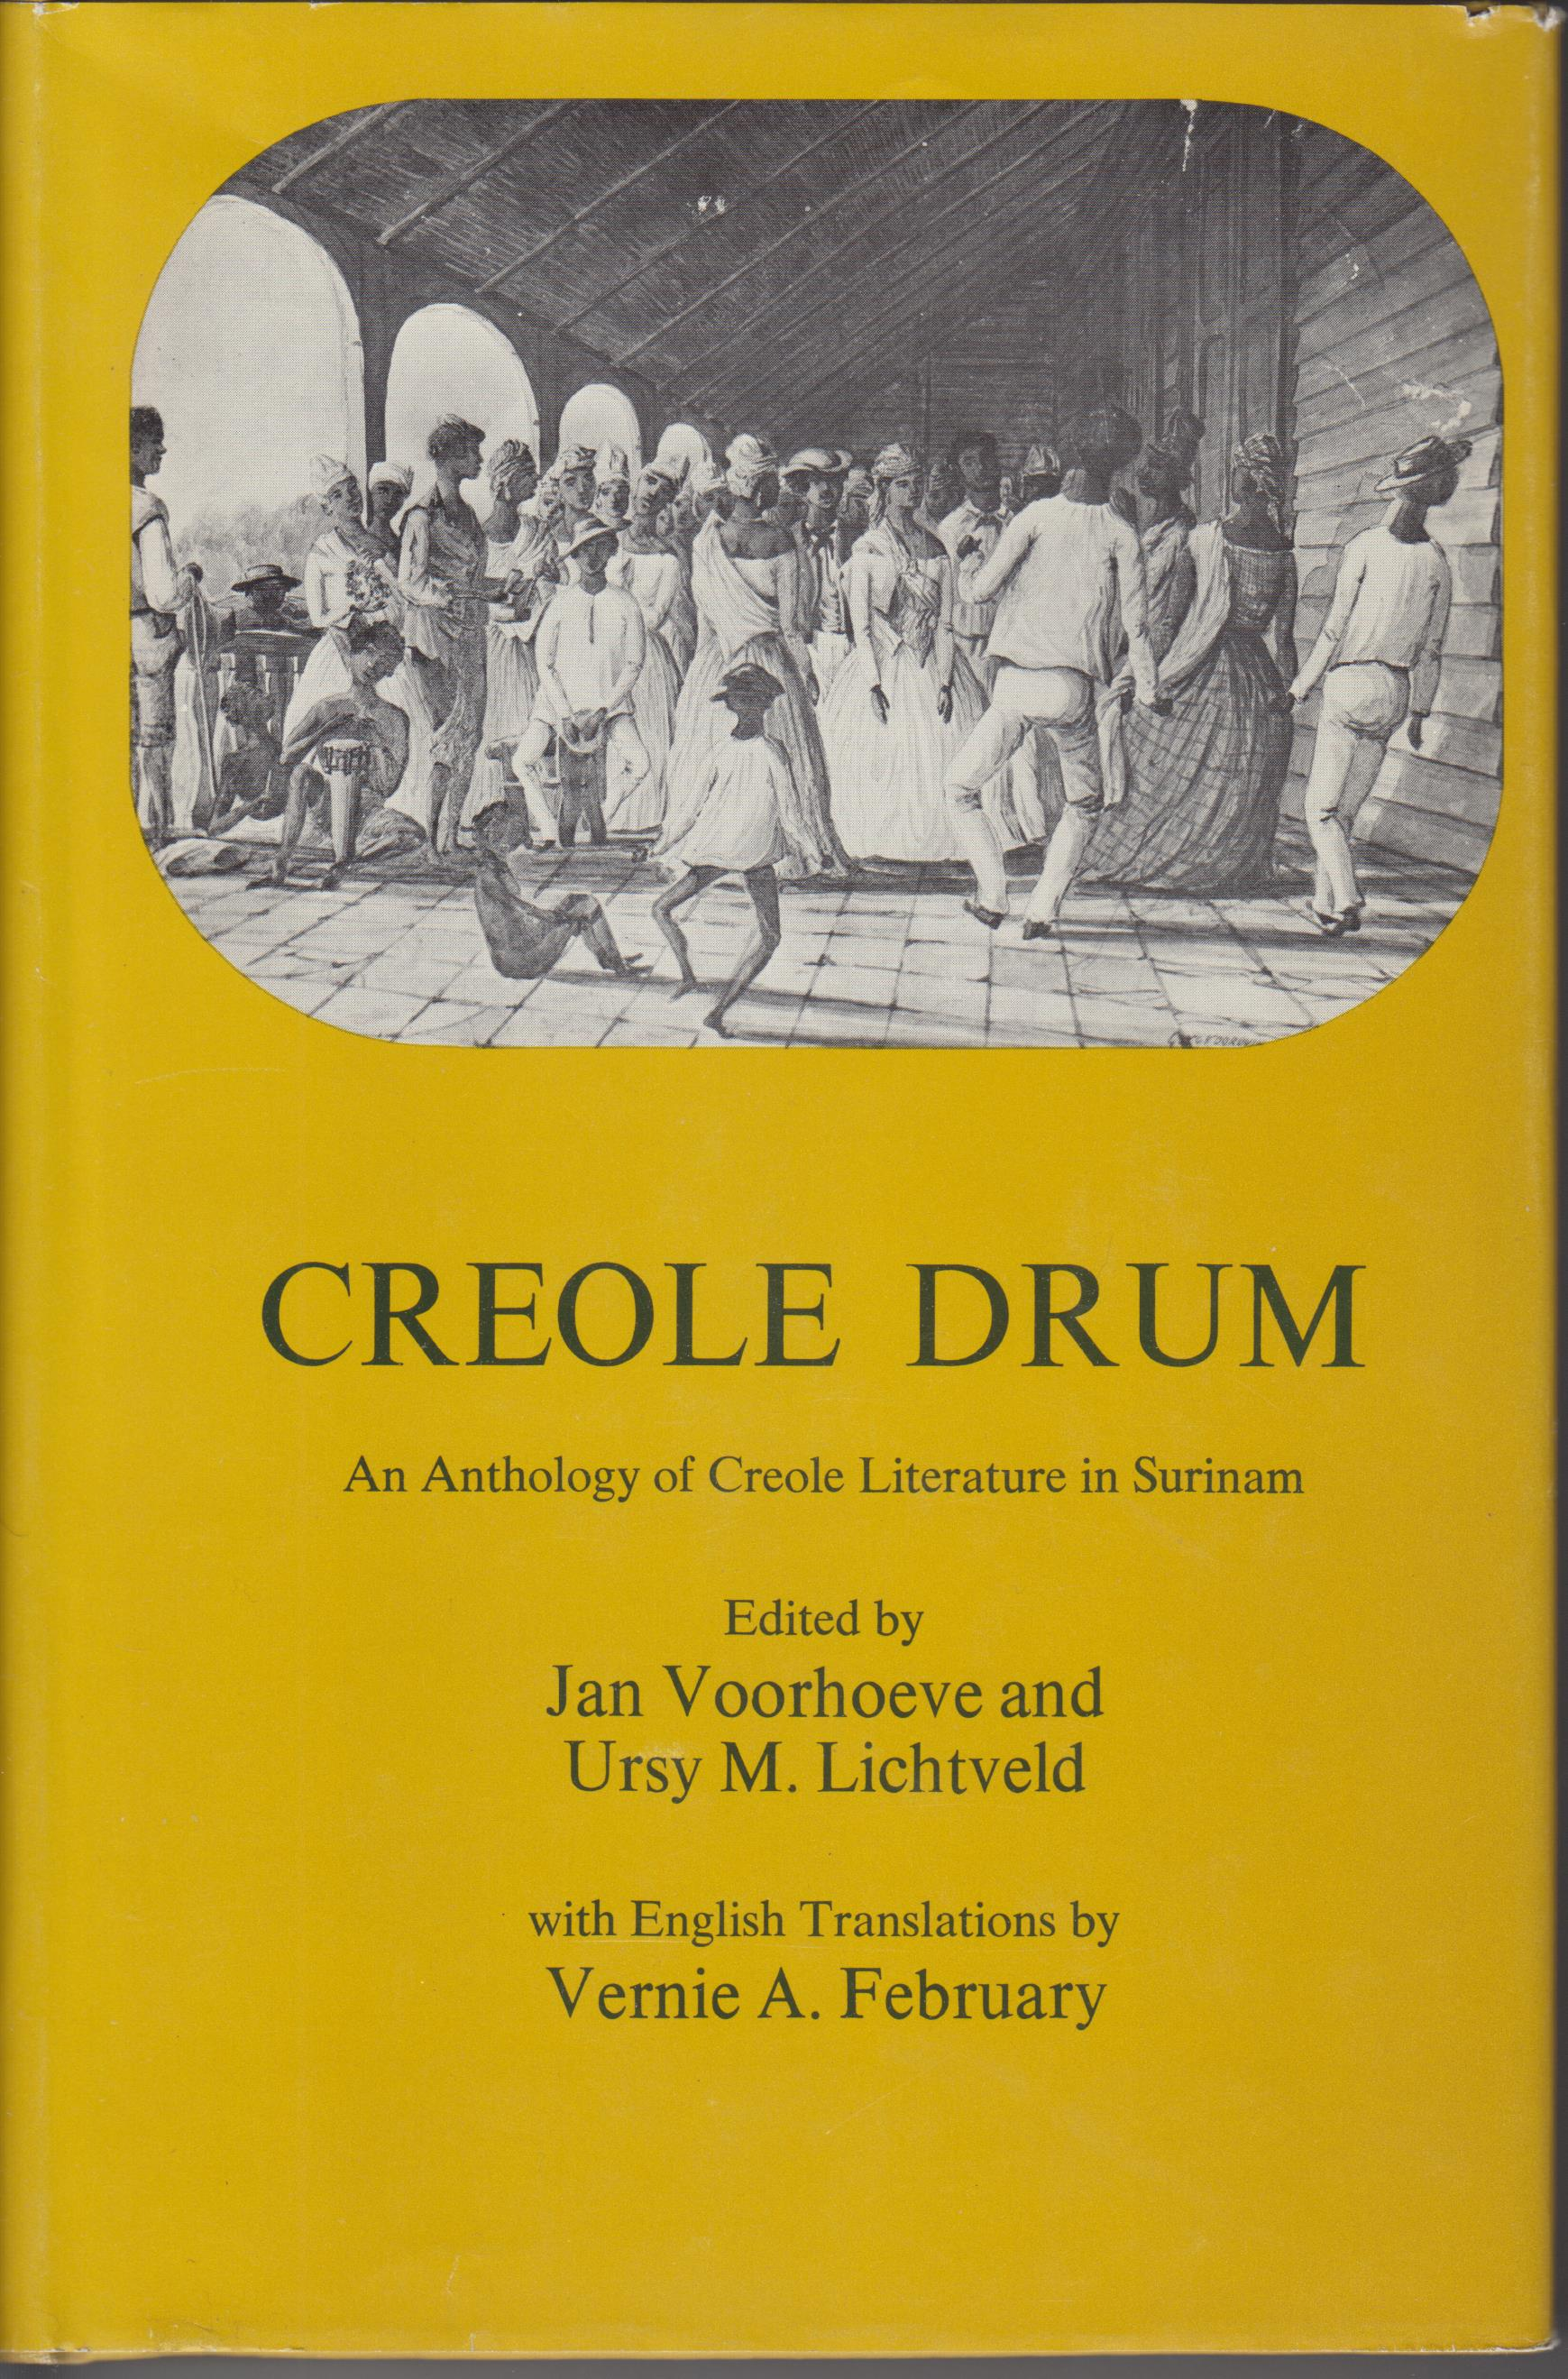 Image for Creole Drum. An Anthology of Creole Literature in Surinam